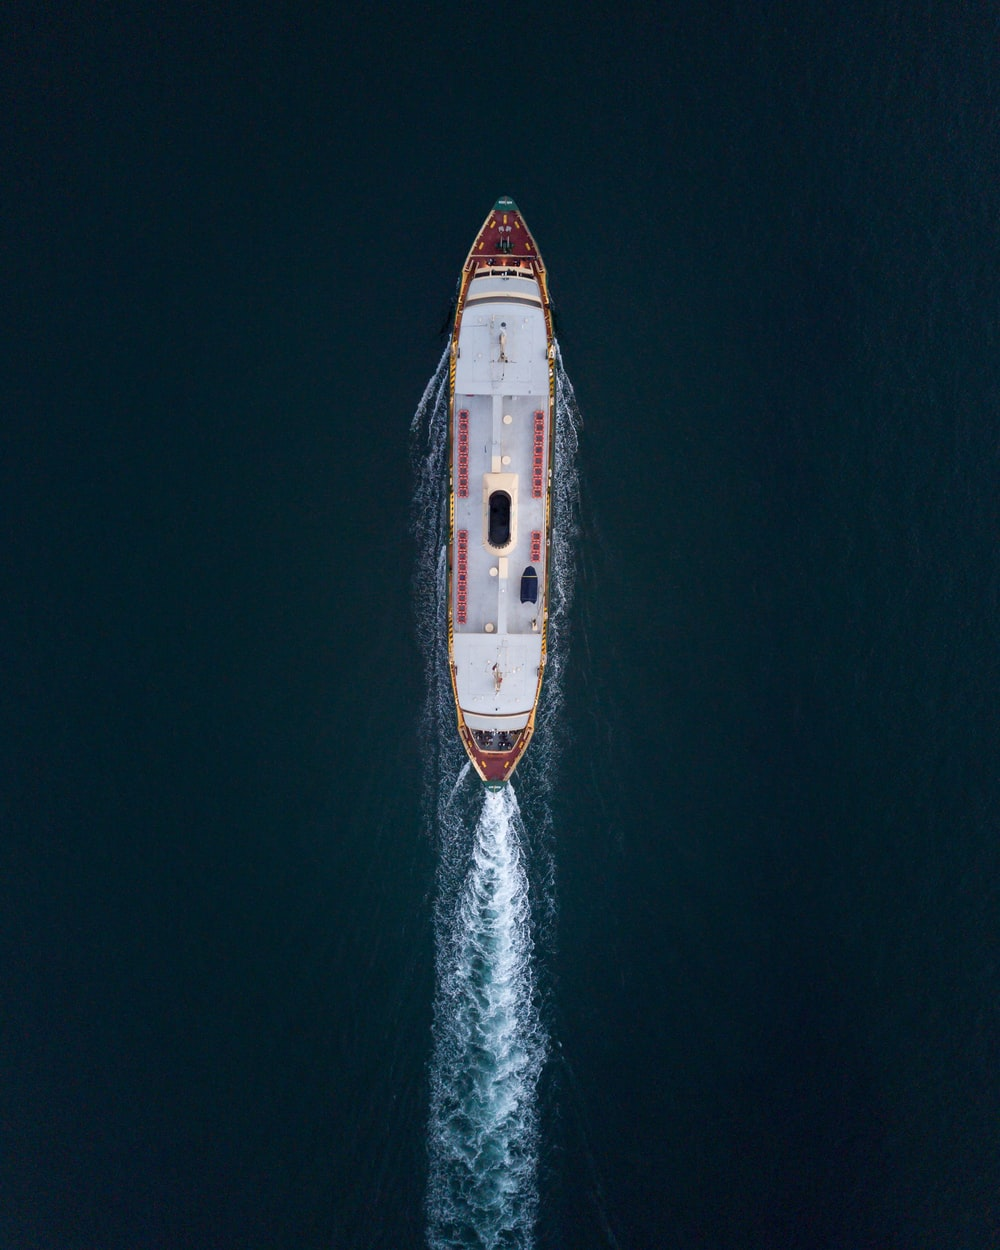 red and white ship on sea